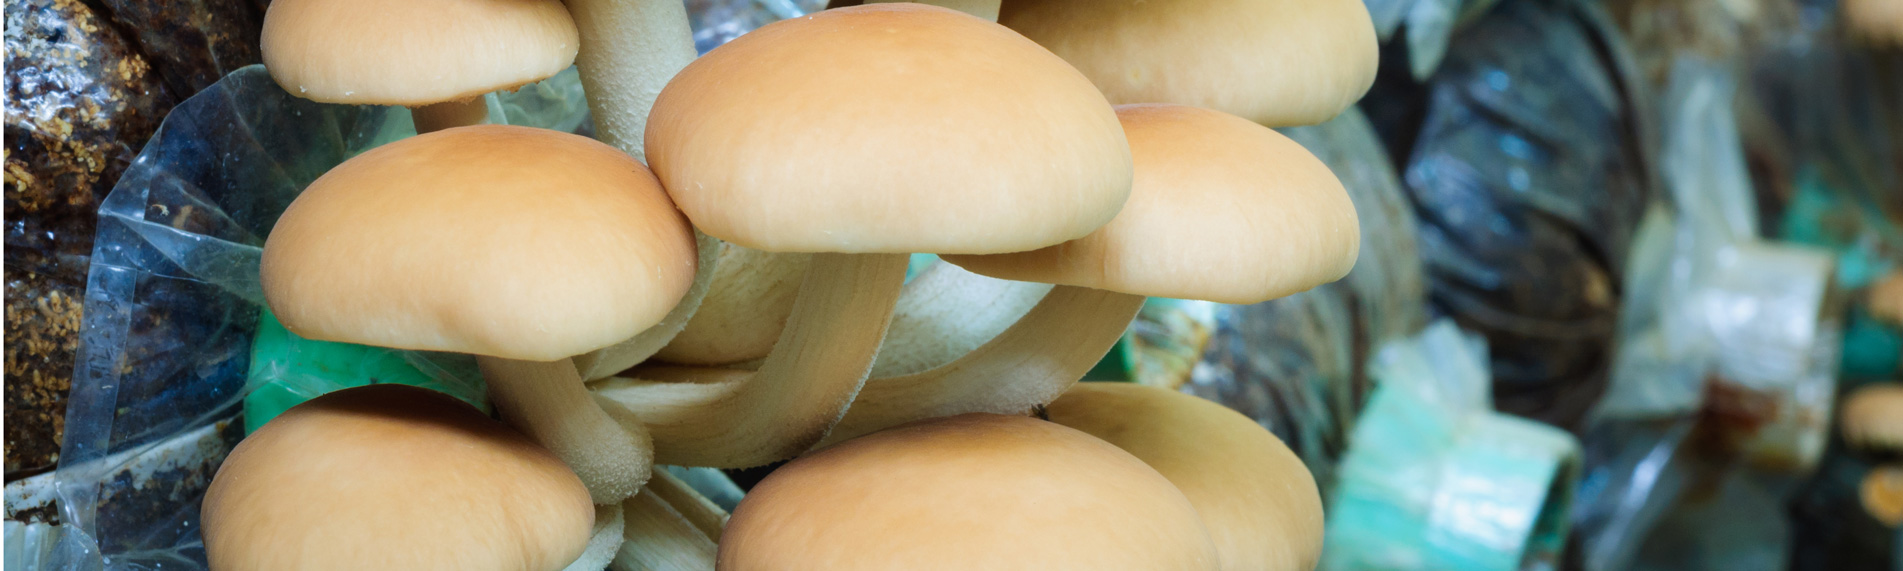 Mushroom growing humidification & humidity control